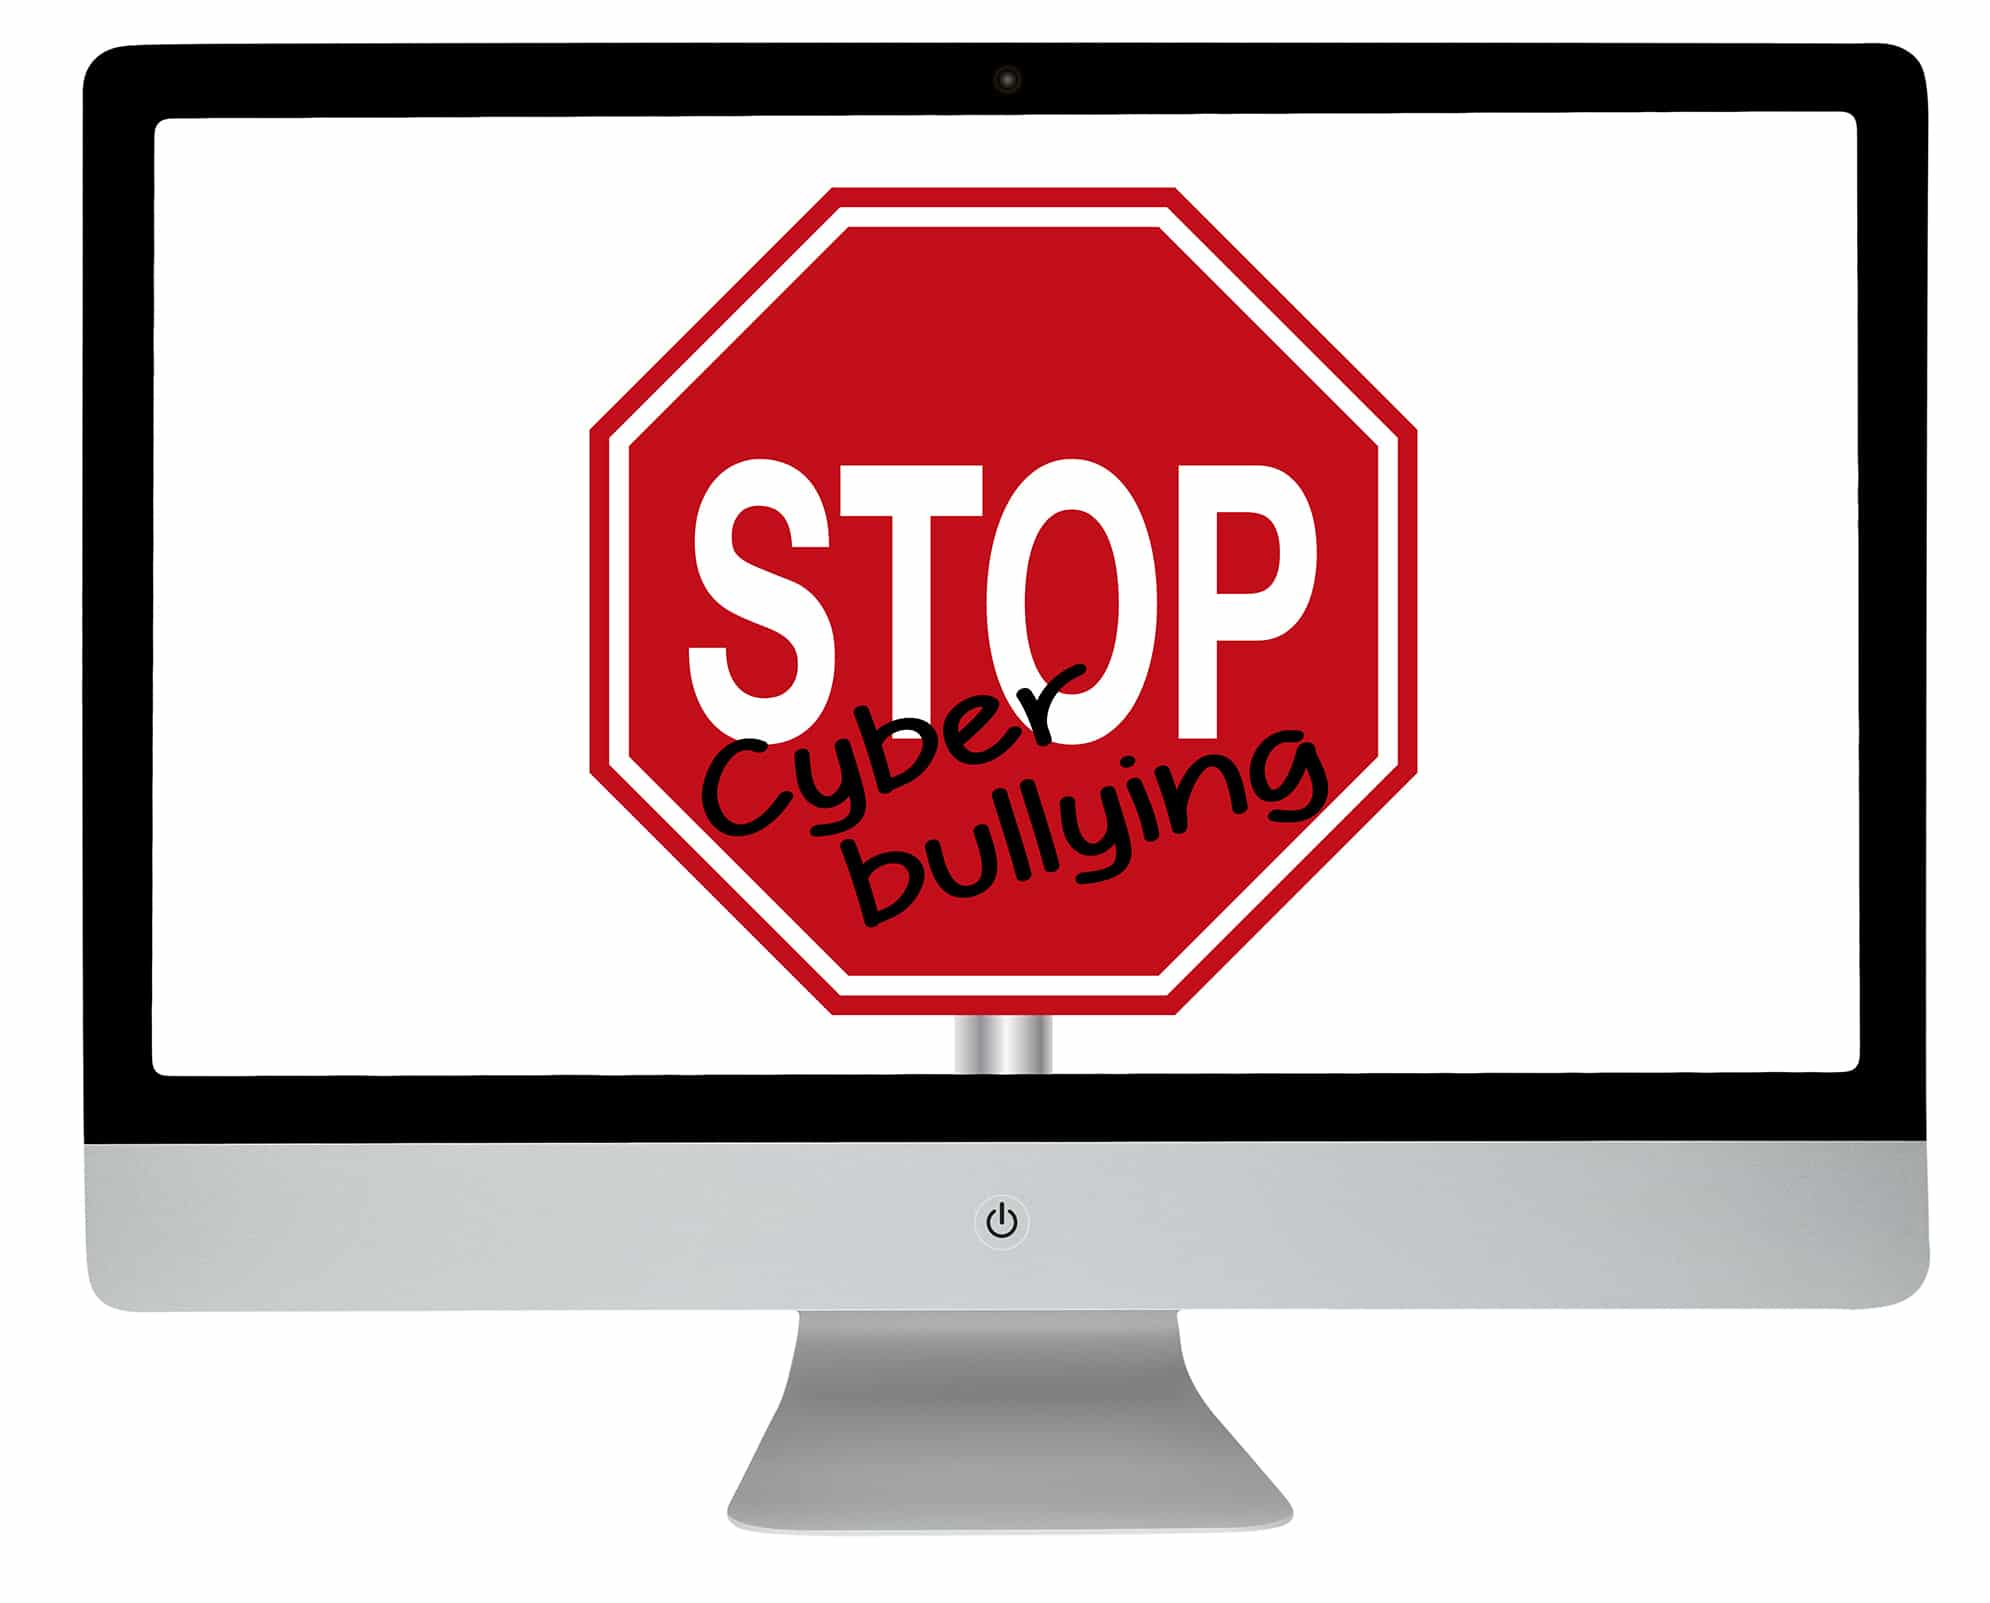 What Do I Do if I'm Being Harassed, Bullied, or Stalked